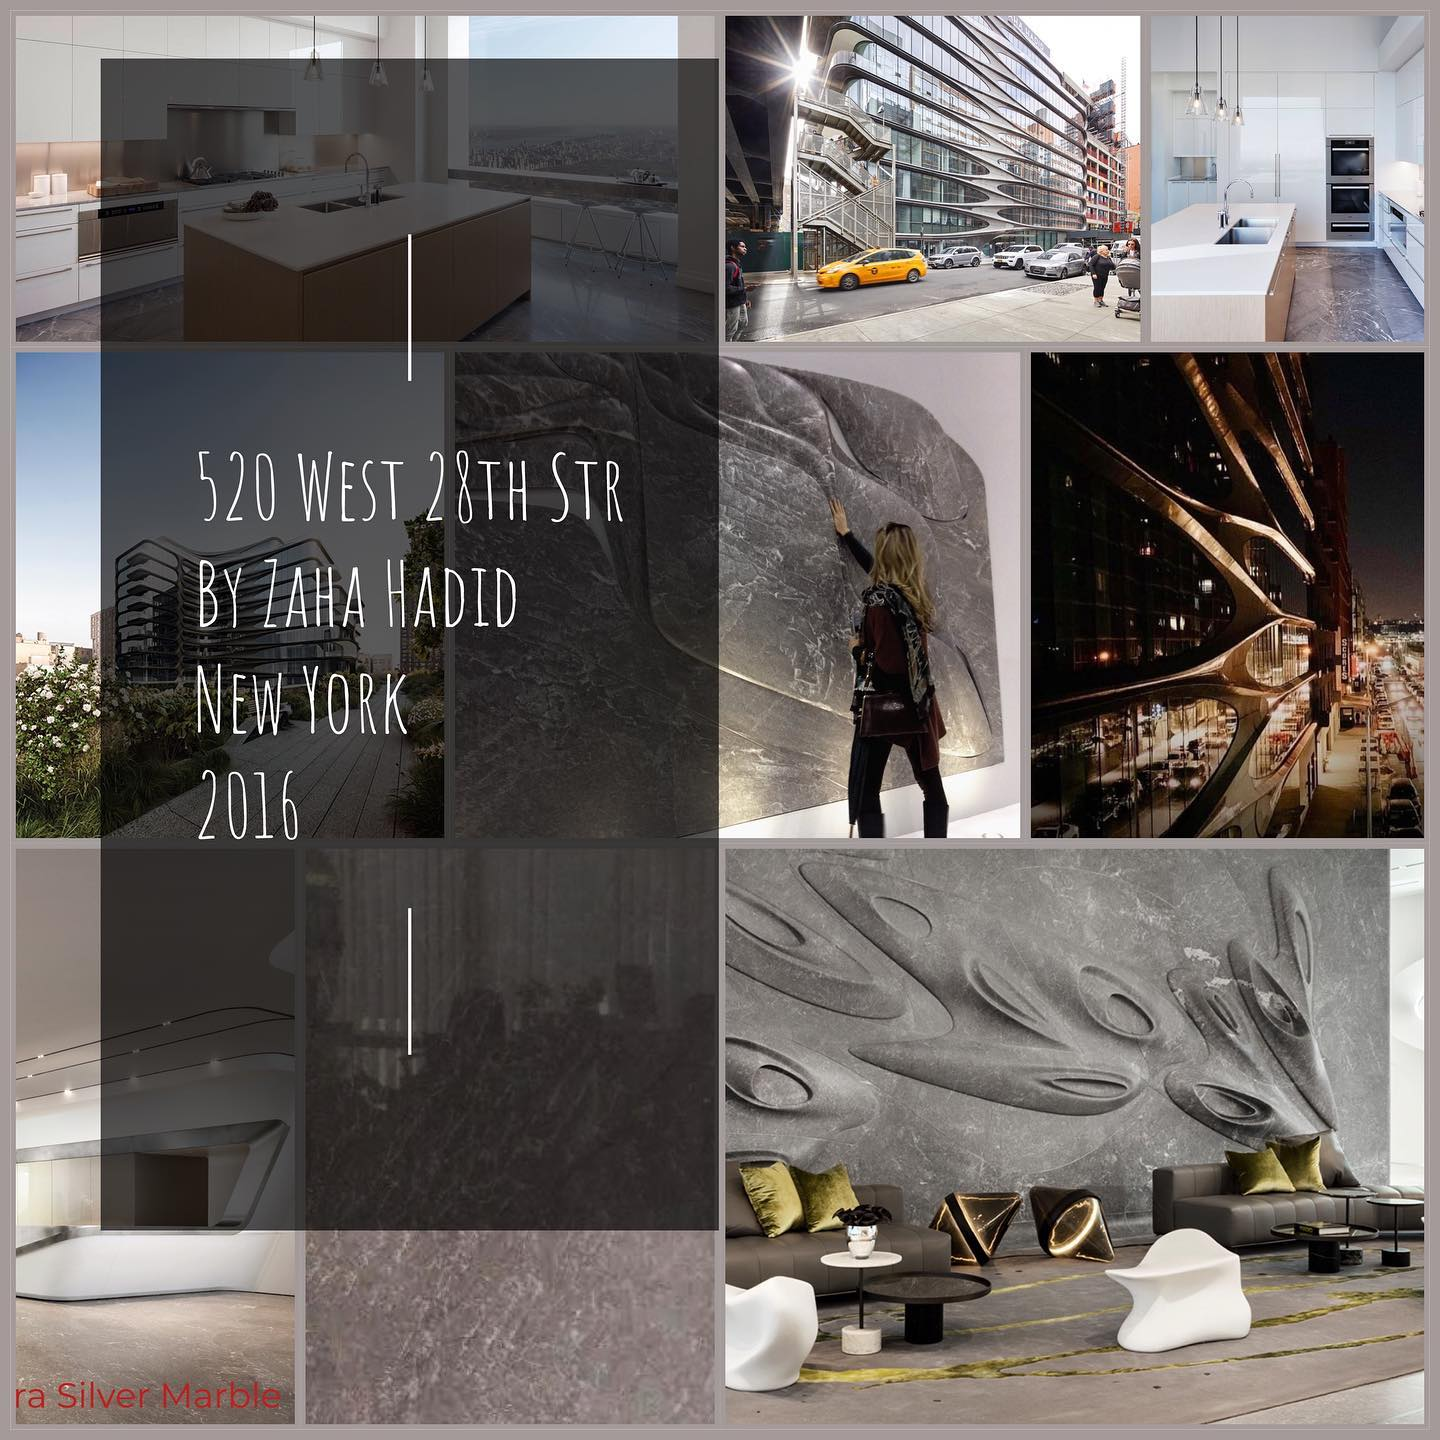 520 West 28th Str by Zaha Hadid New York 2016